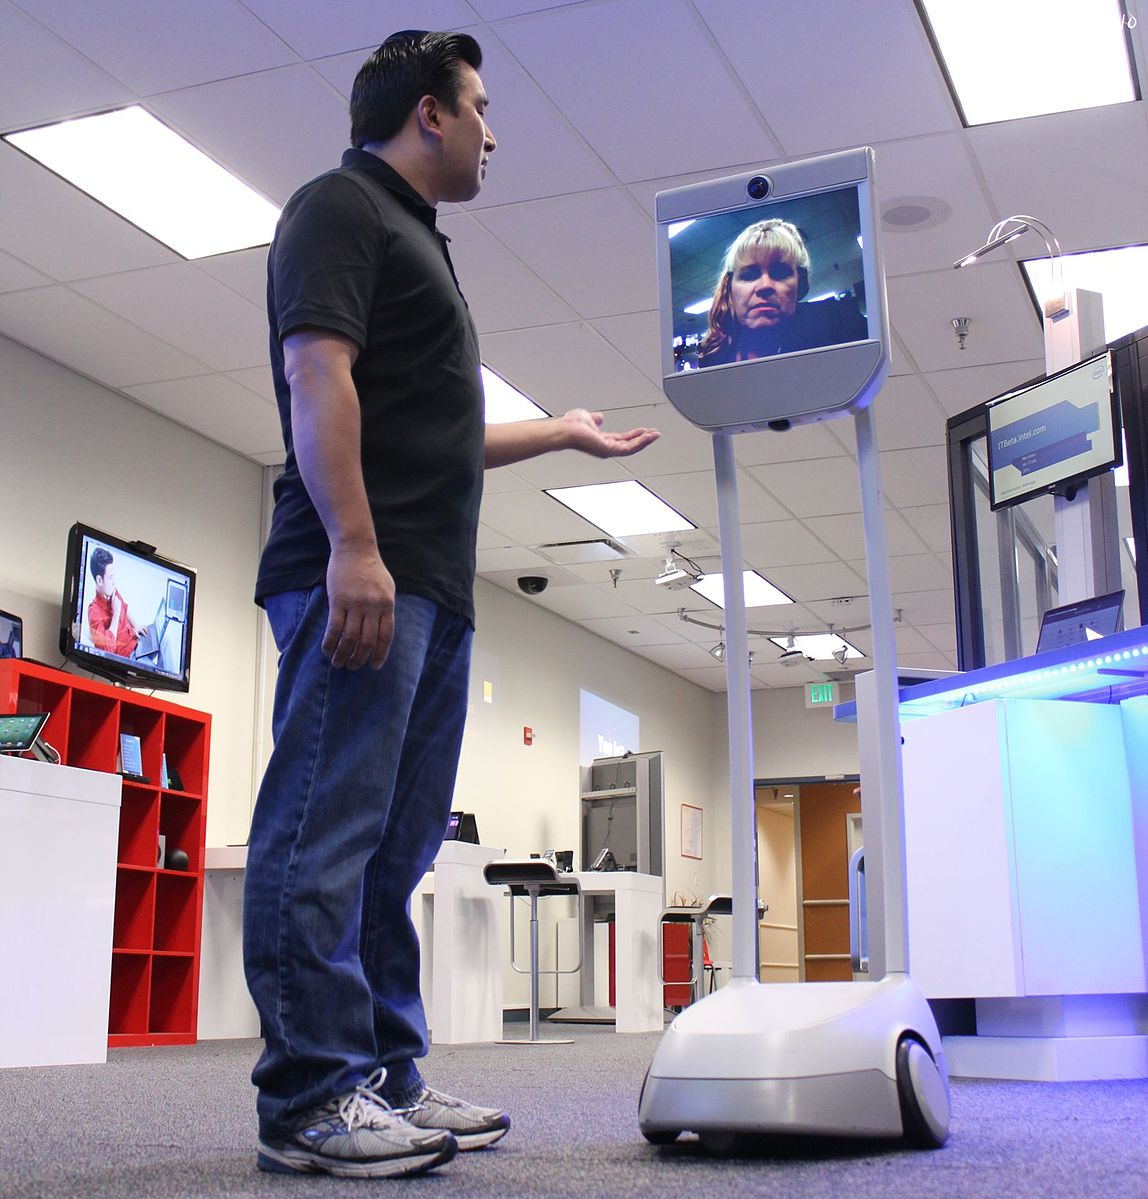 The Beam, a telepresence robot, allows homebound art lovers to explore famous museums from the comfort of their homes.